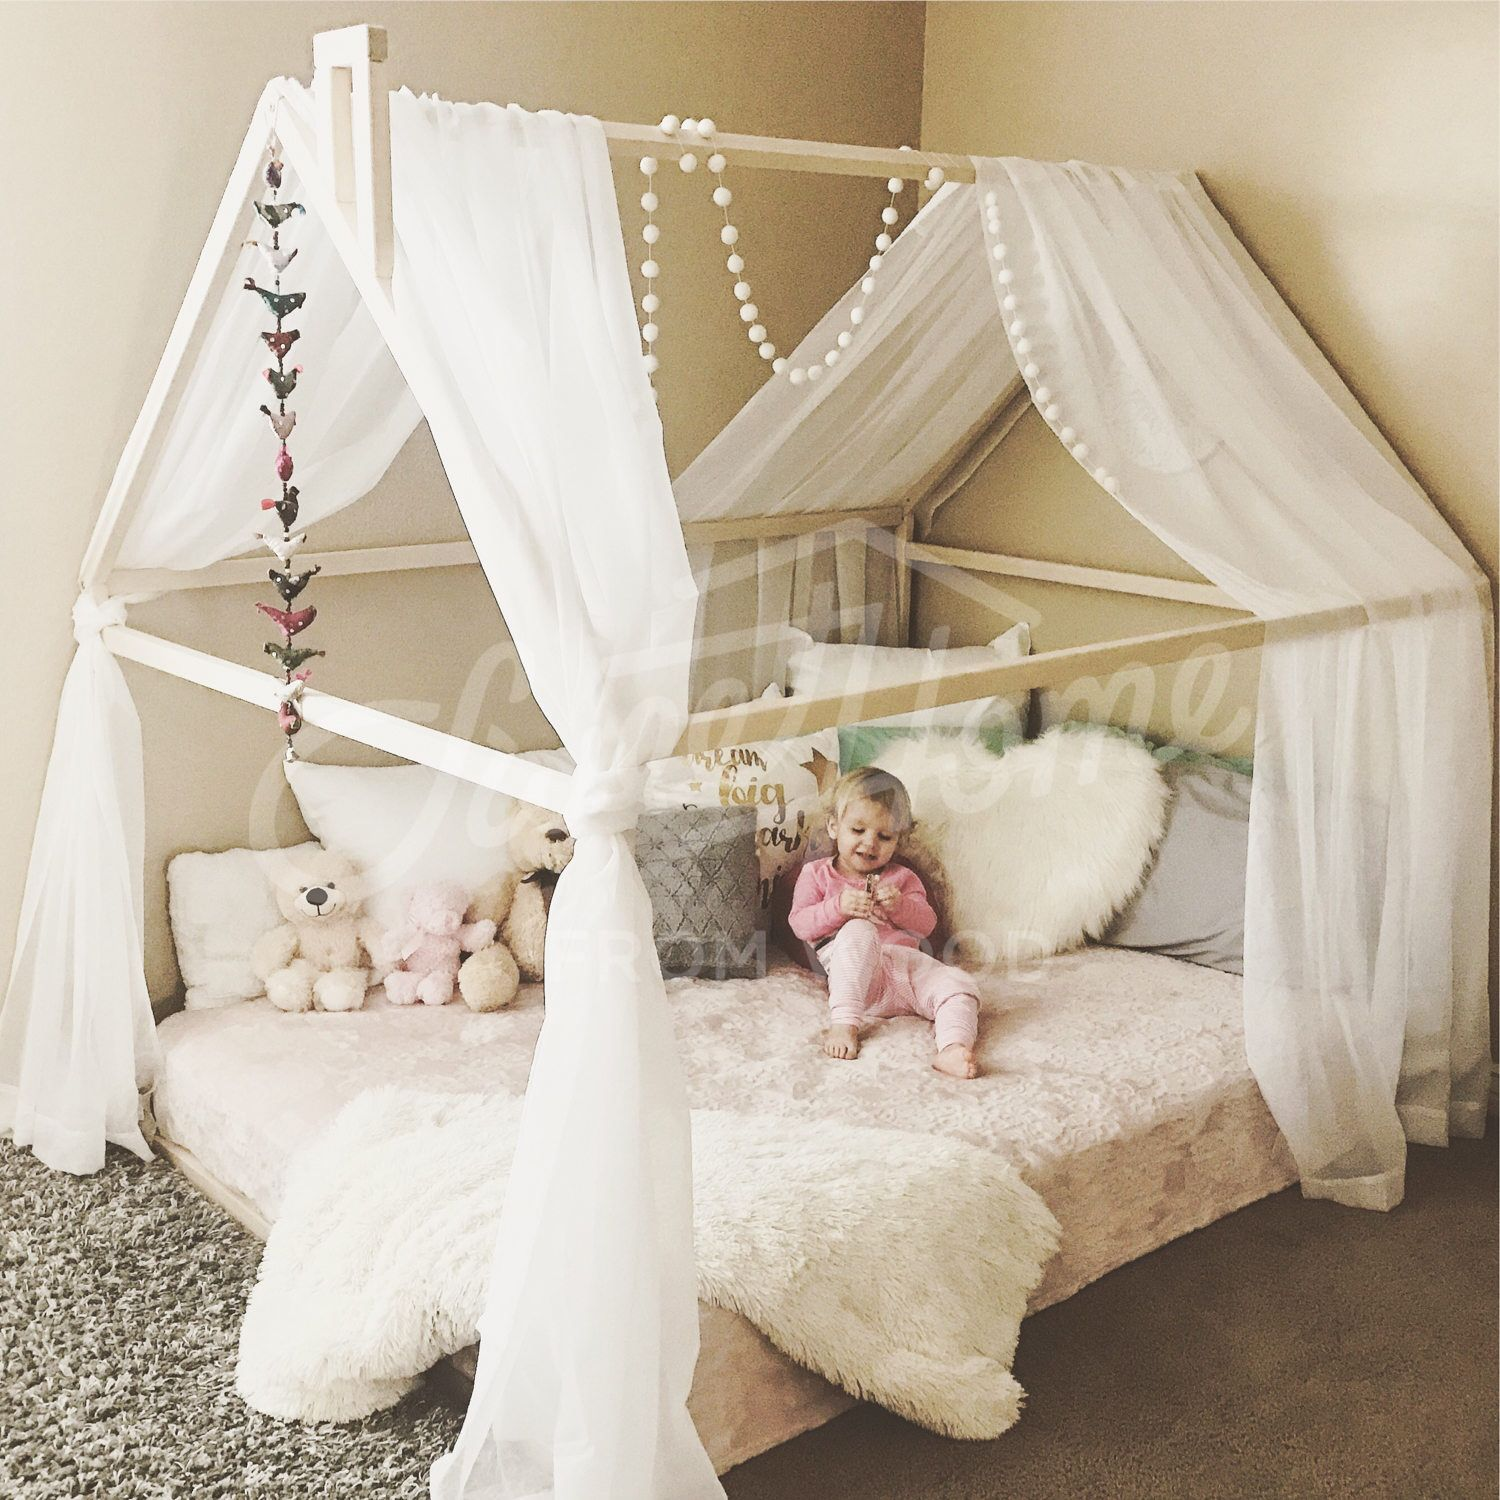 Wood bed FULL DOUBLE toddler bed tent bed wooden house bed frame